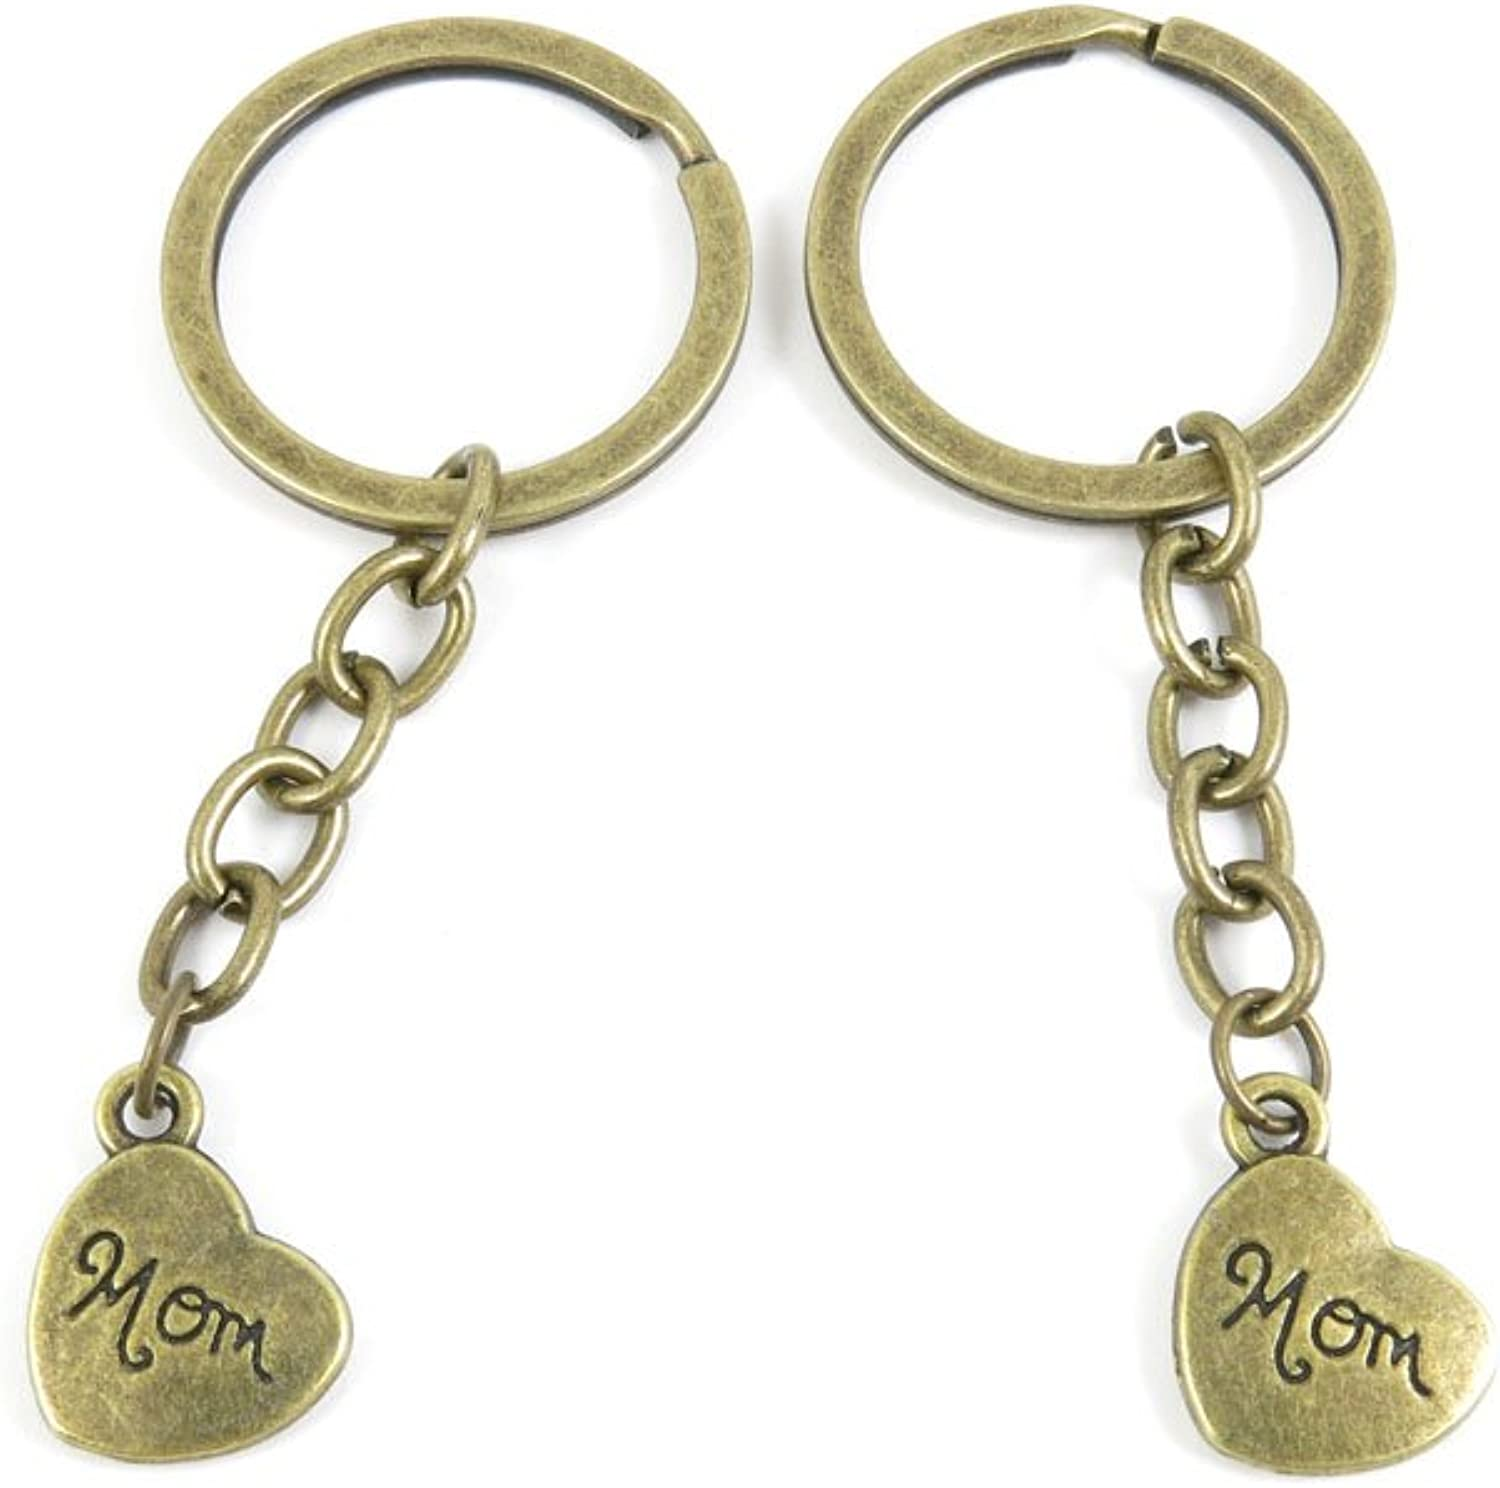 100 PCS Keyrings Keychains Key Ring Chains Tags Jewelry Findings Clasps Buckles Supplies T7YL6 Mon Heart